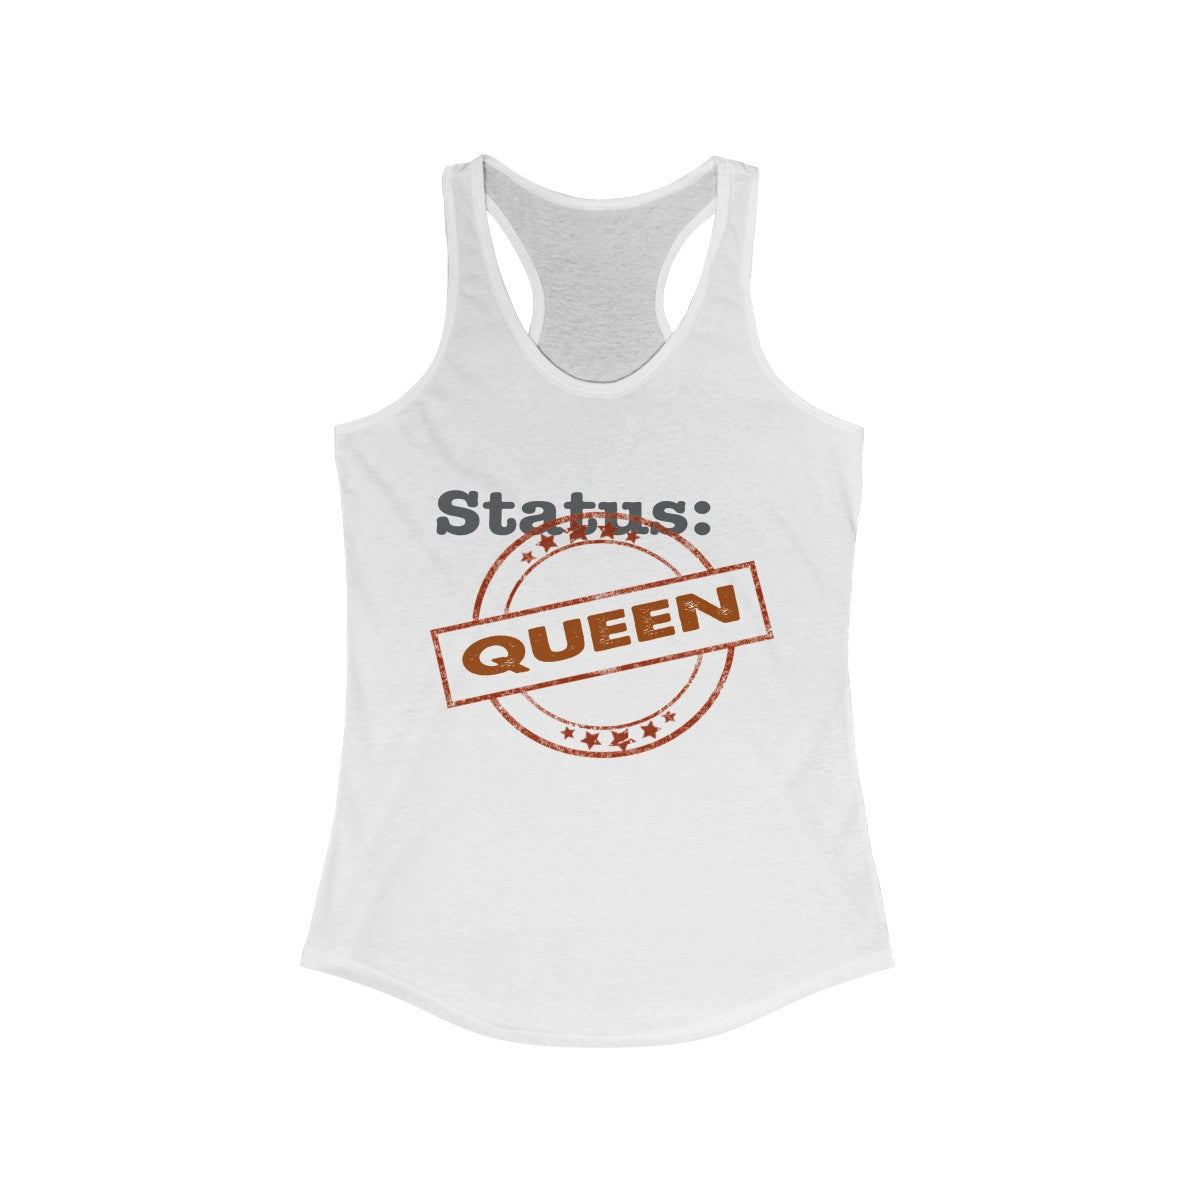 Women's The Ideal Racerback Tank